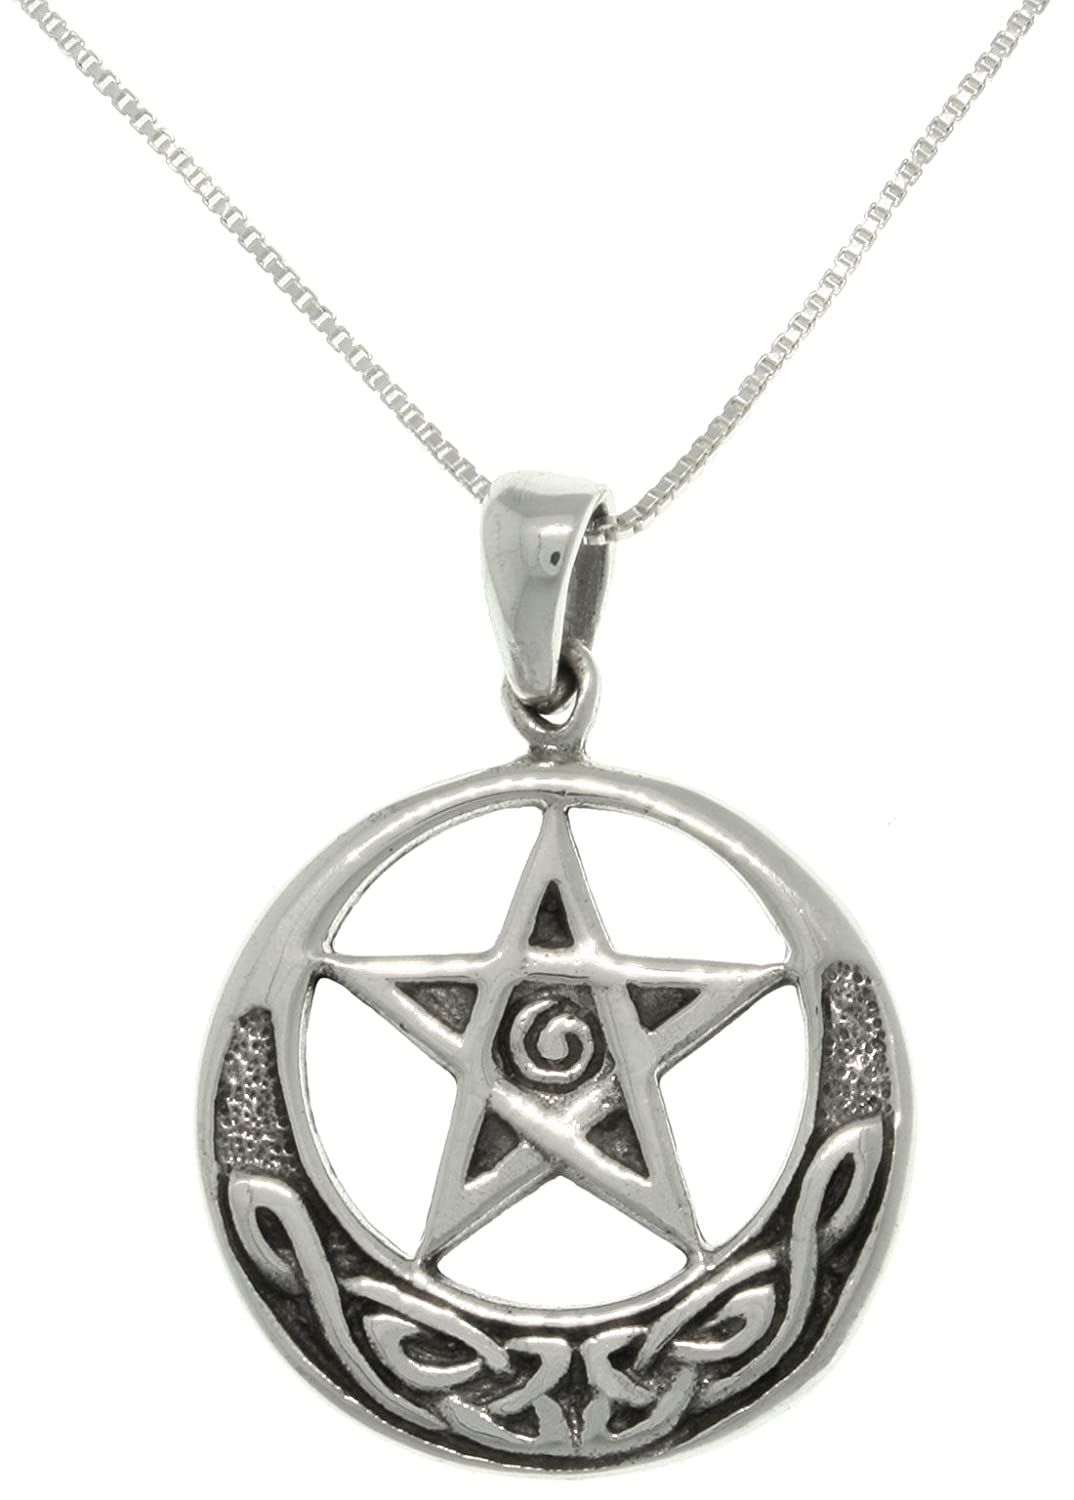 Jewelry Trends Celtic Star and Moon Sterling Silver Pendant Necklace 18